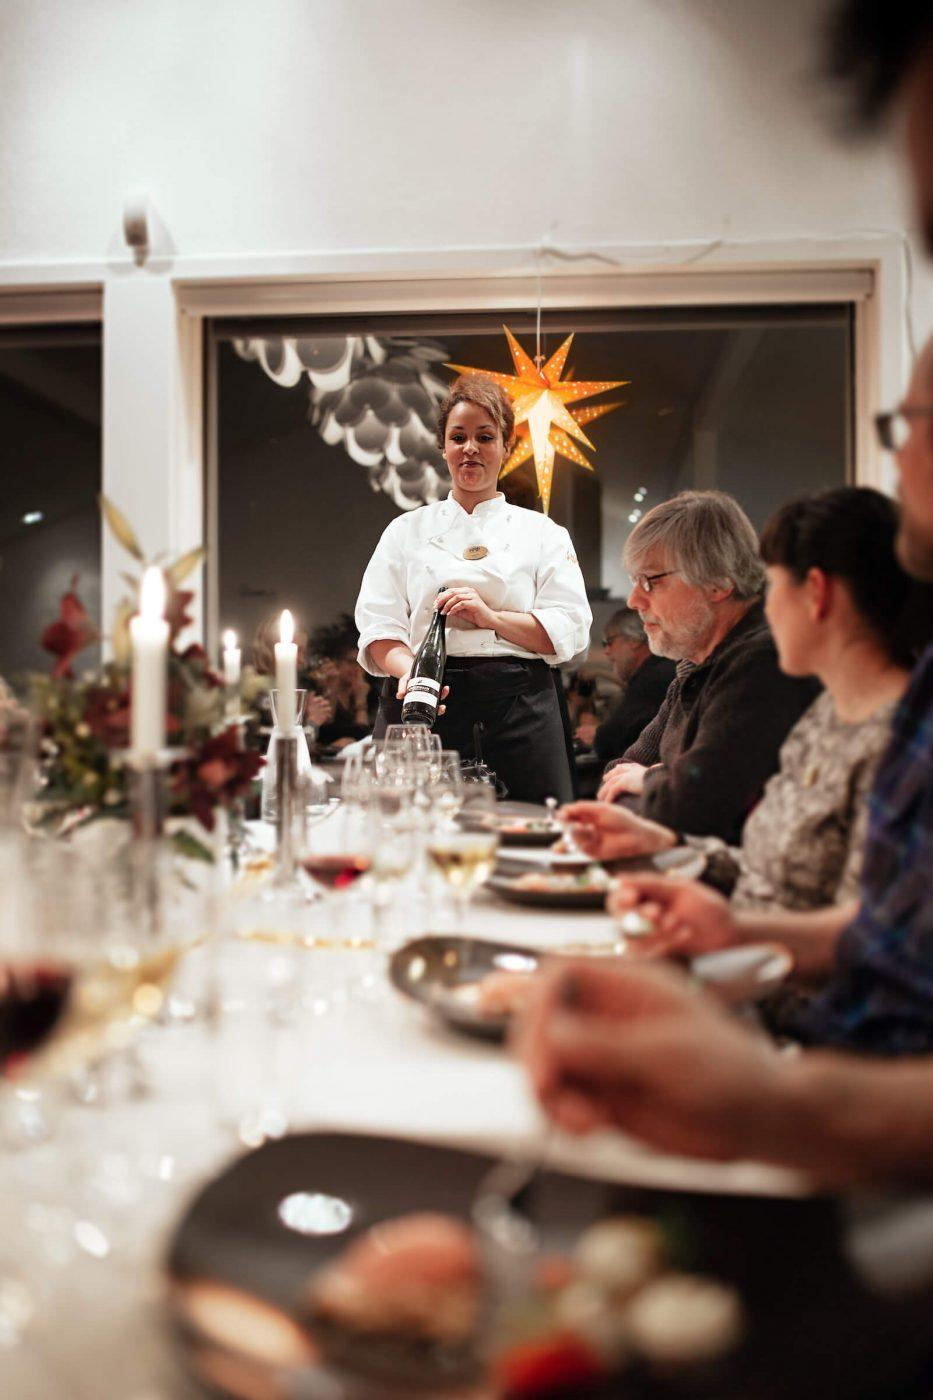 Waiter from Hotel Hans Egede presenting wine to locals and tourists having a christmas dinner at the Margrethe Suite in Nuuk in Greenland. By Rebecca Gustafsson